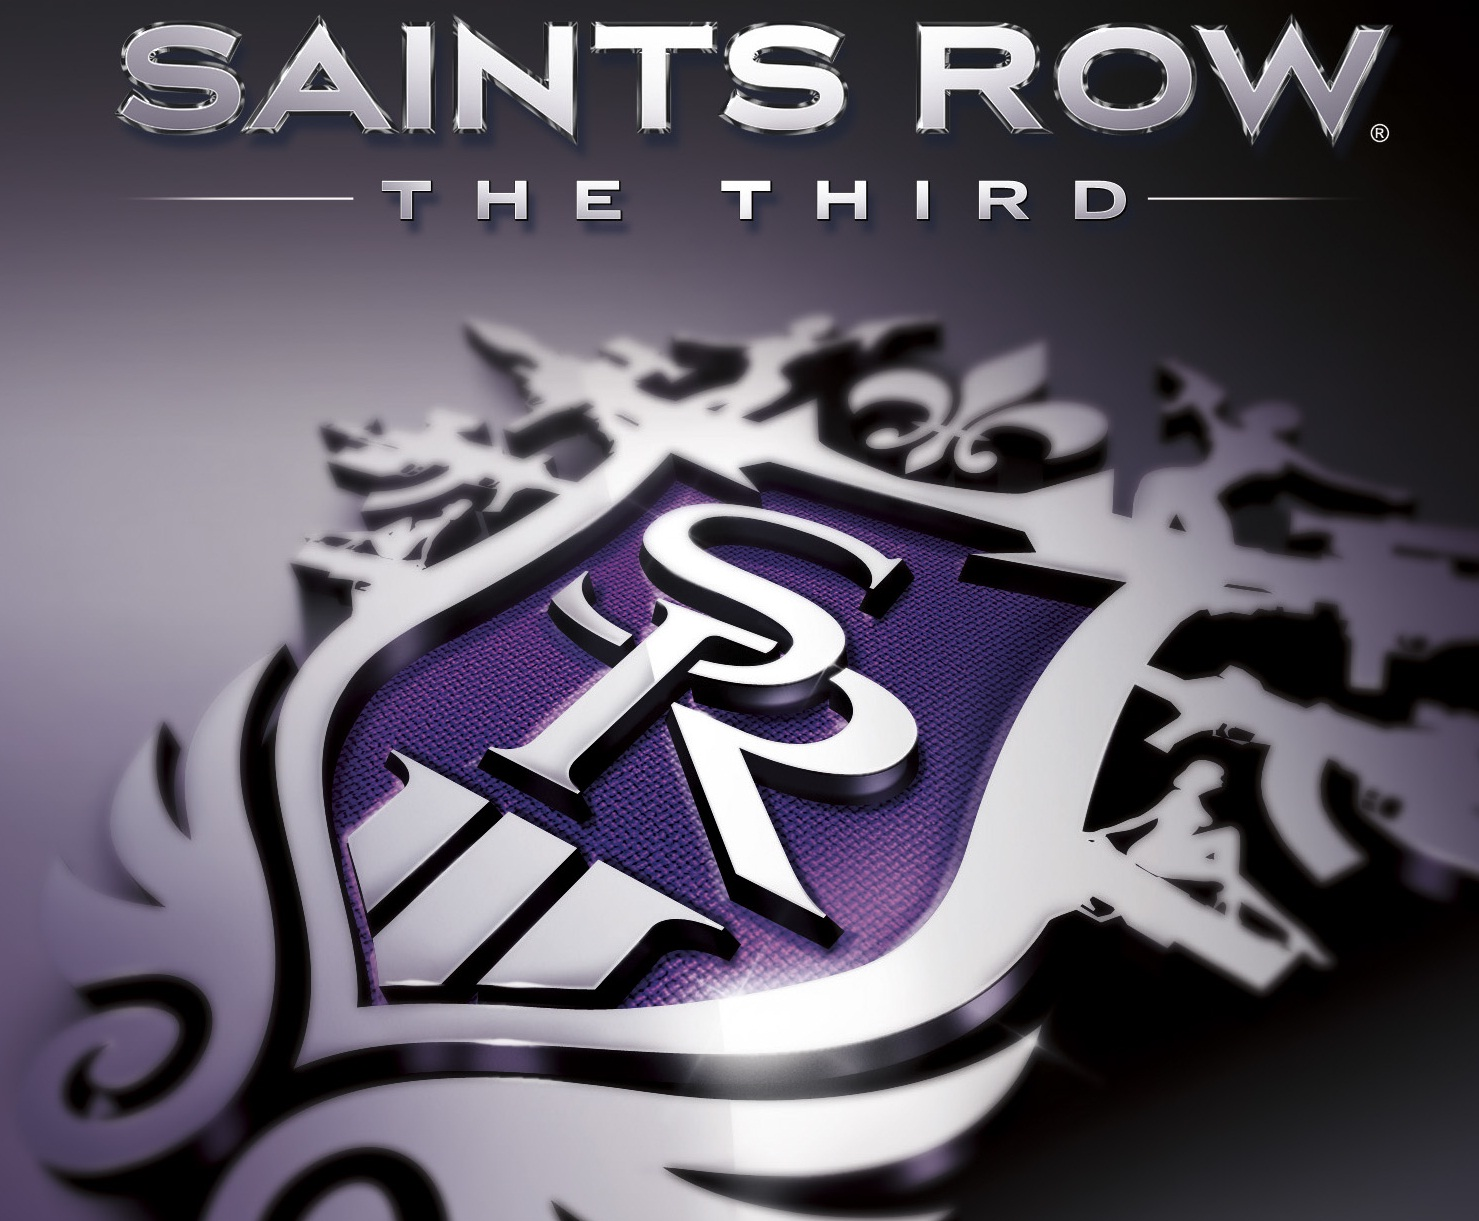 Saints Row IV Artwork Wallpaper for Coby Kyros MID7125  - saints row iv artwork wallpapers